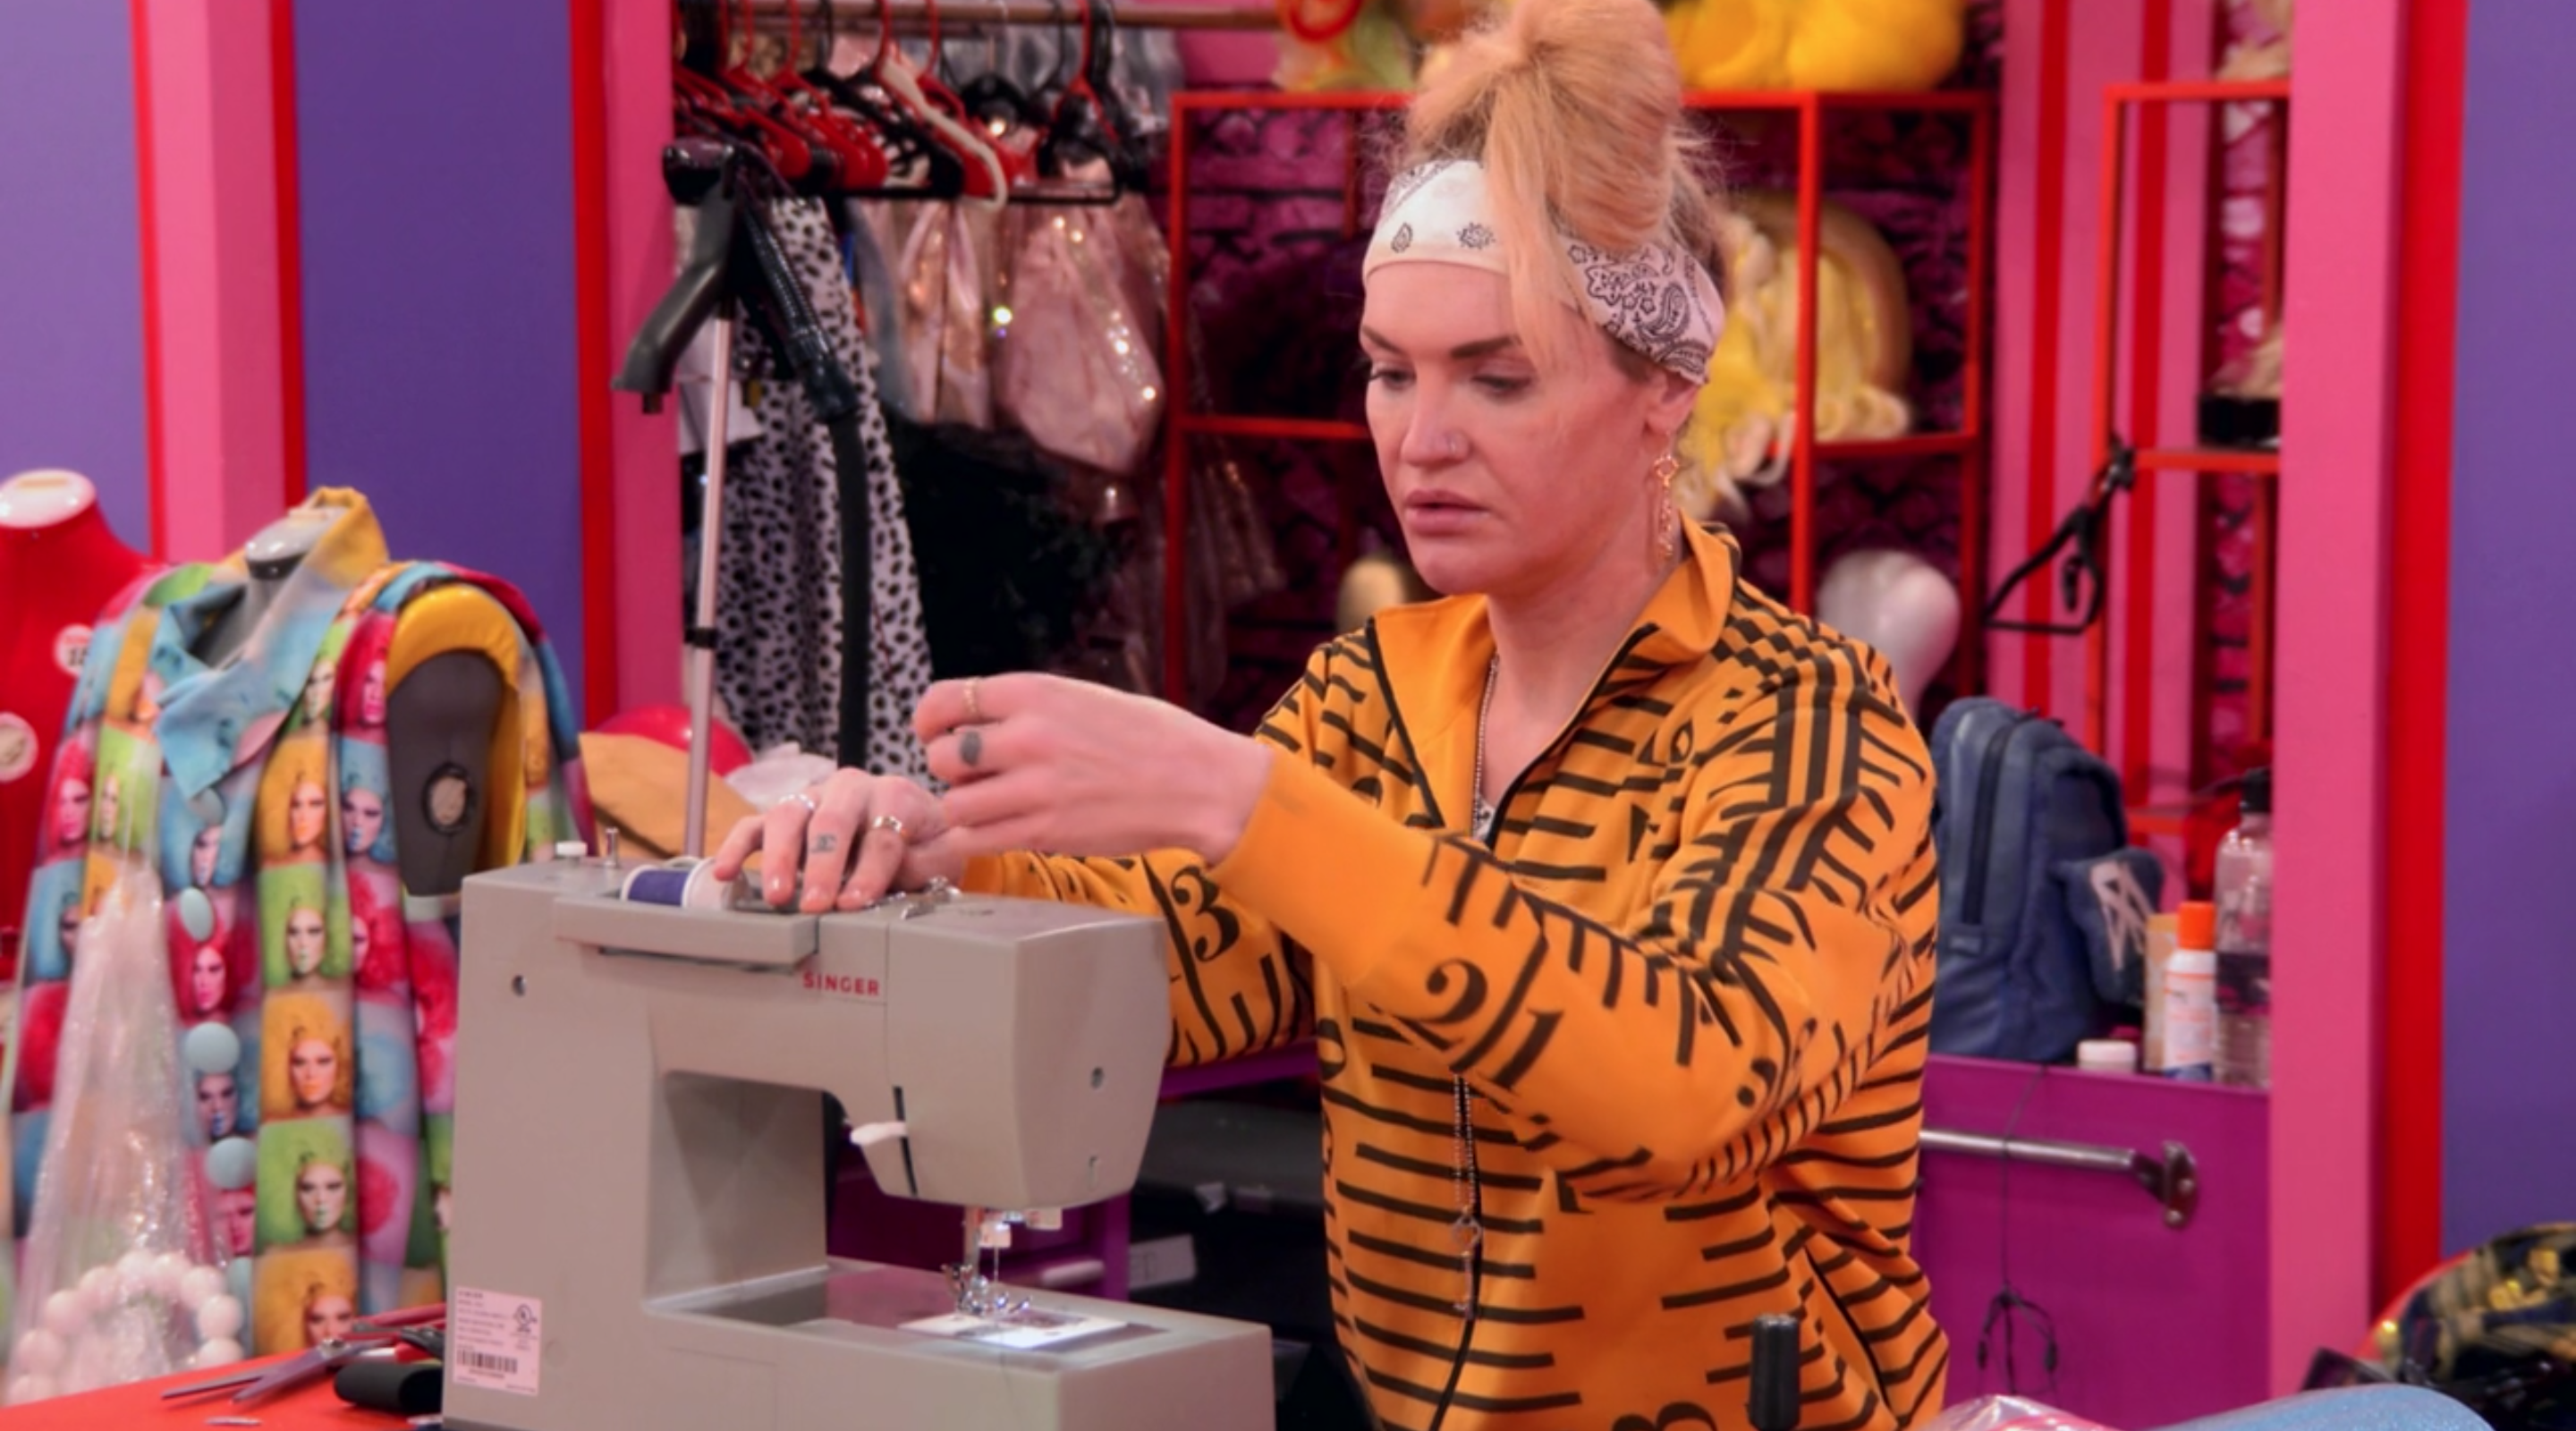 Kylie at her sewing machine.